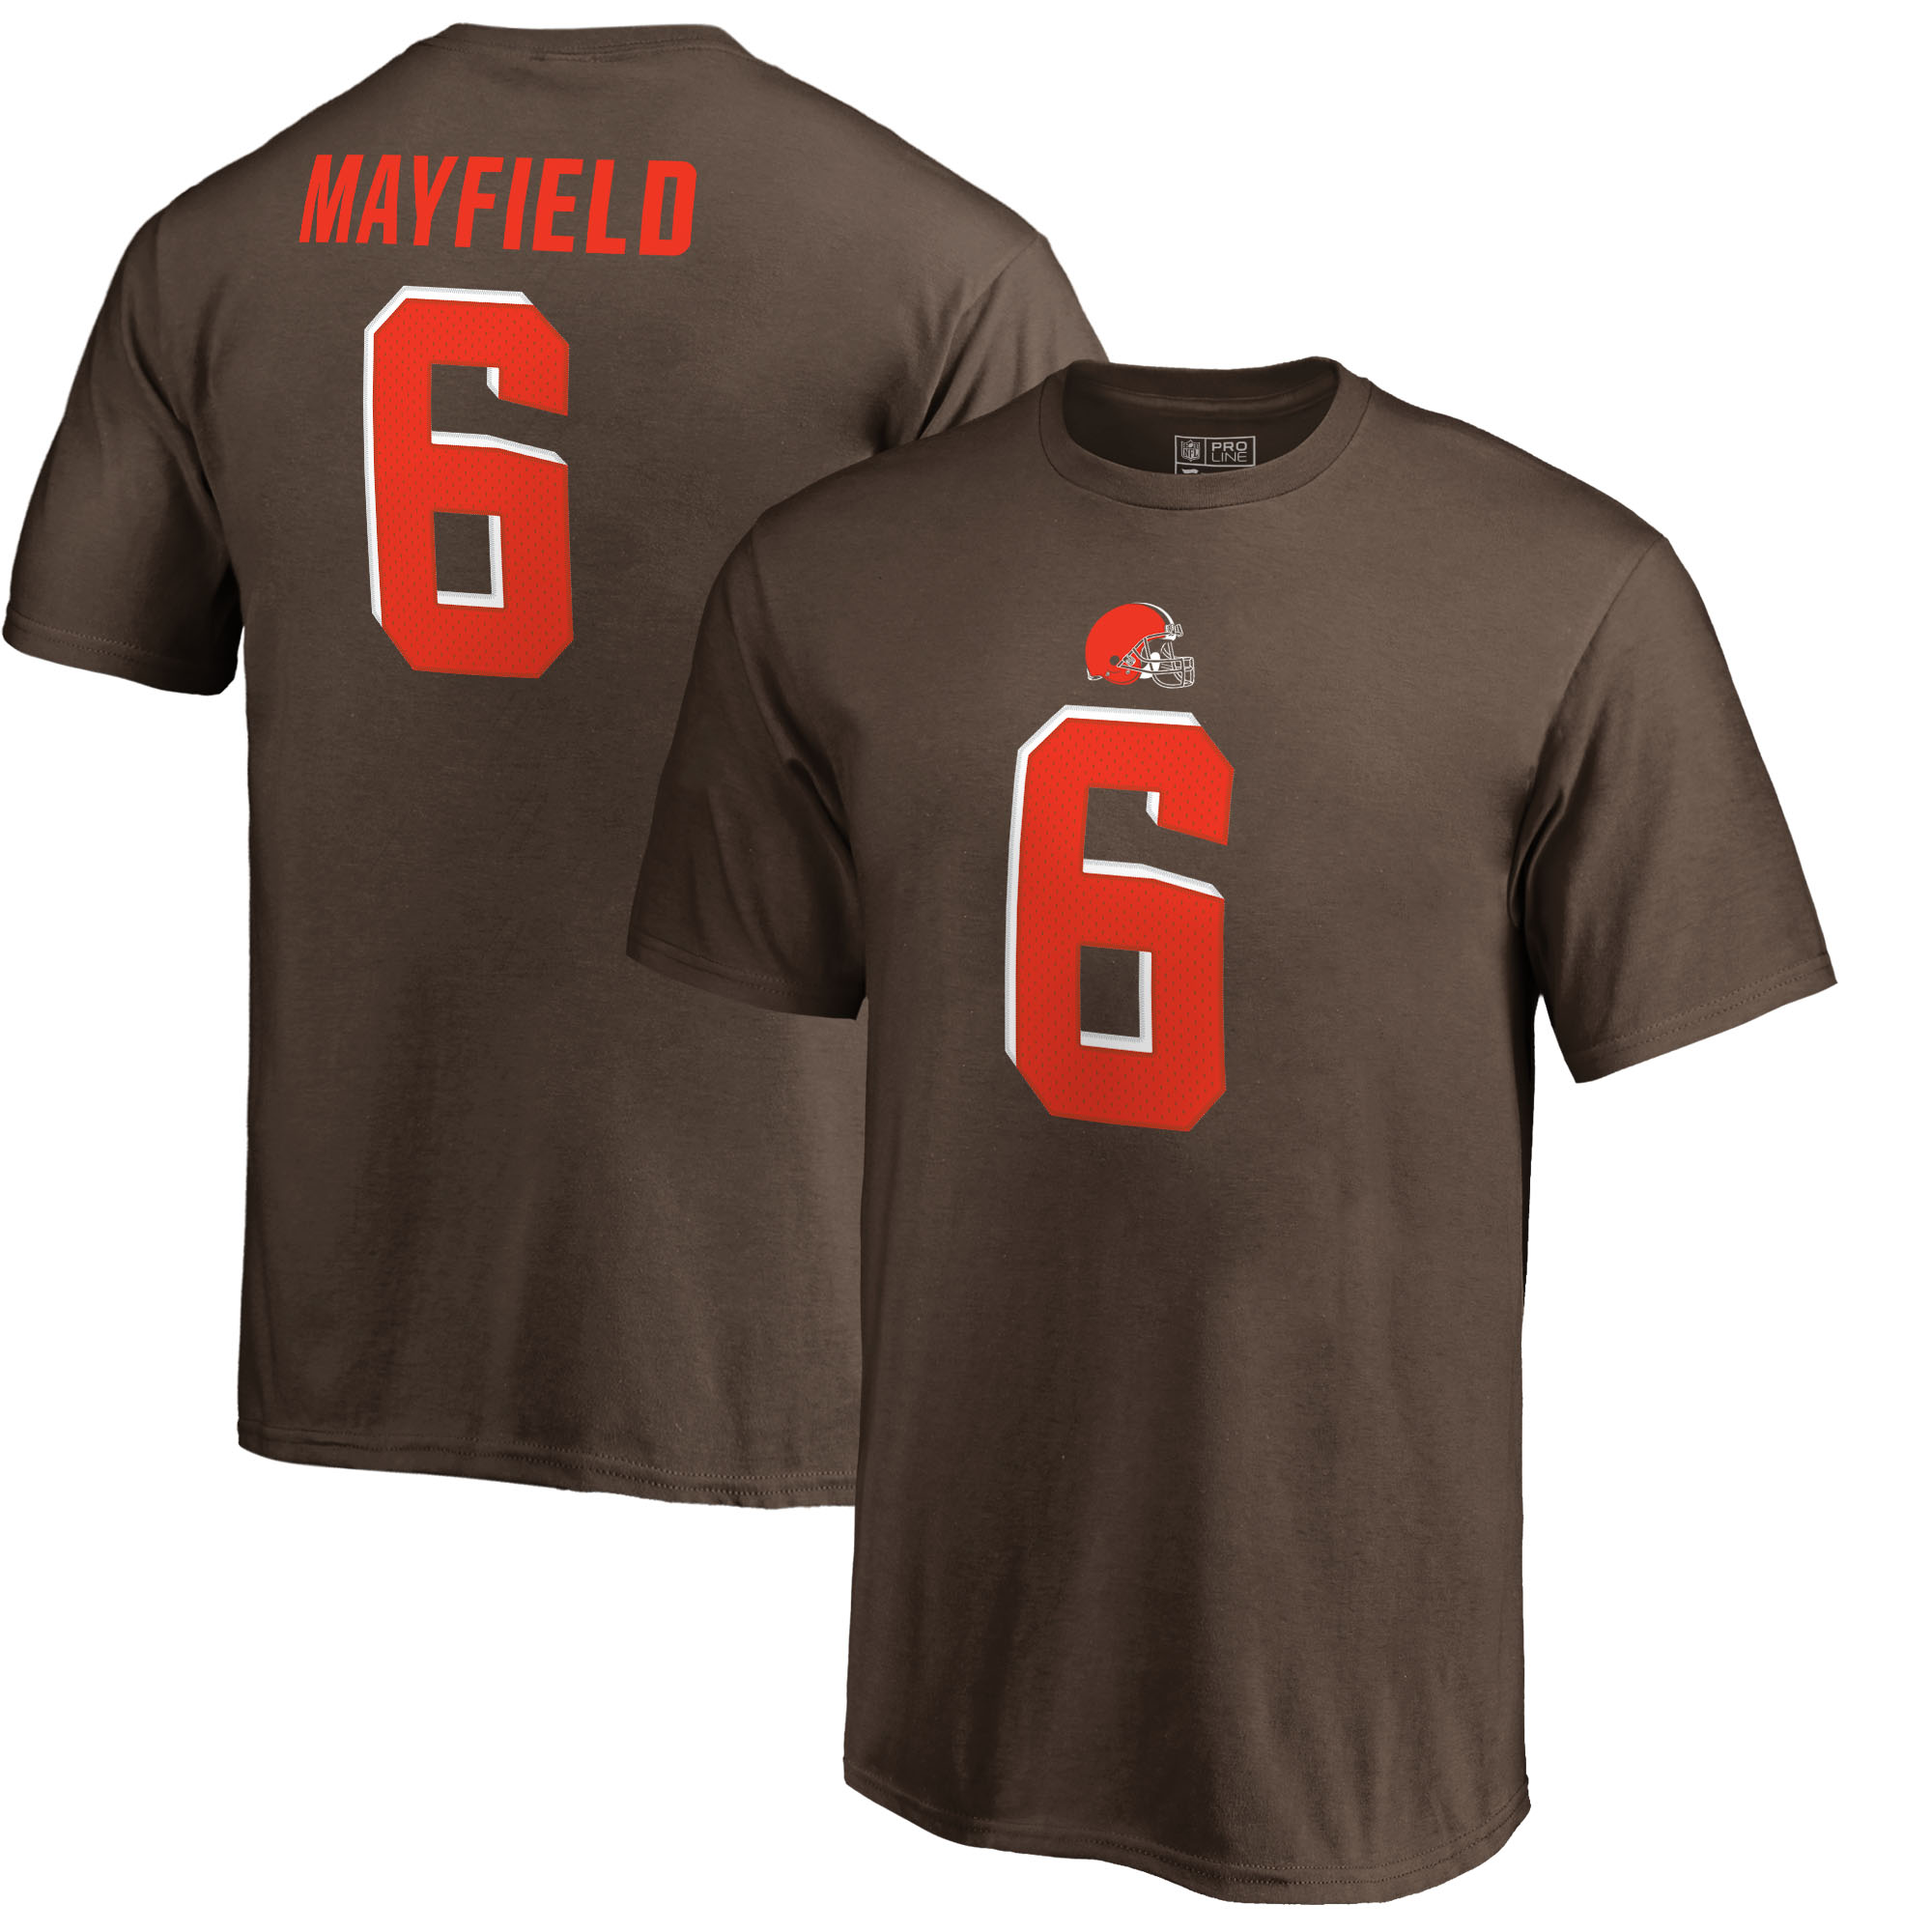 Baker Mayfield Cleveland Browns NFL Pro Line by Fanatics Branded Youth Authentic Stack Name & Number T-Shirt - Brown